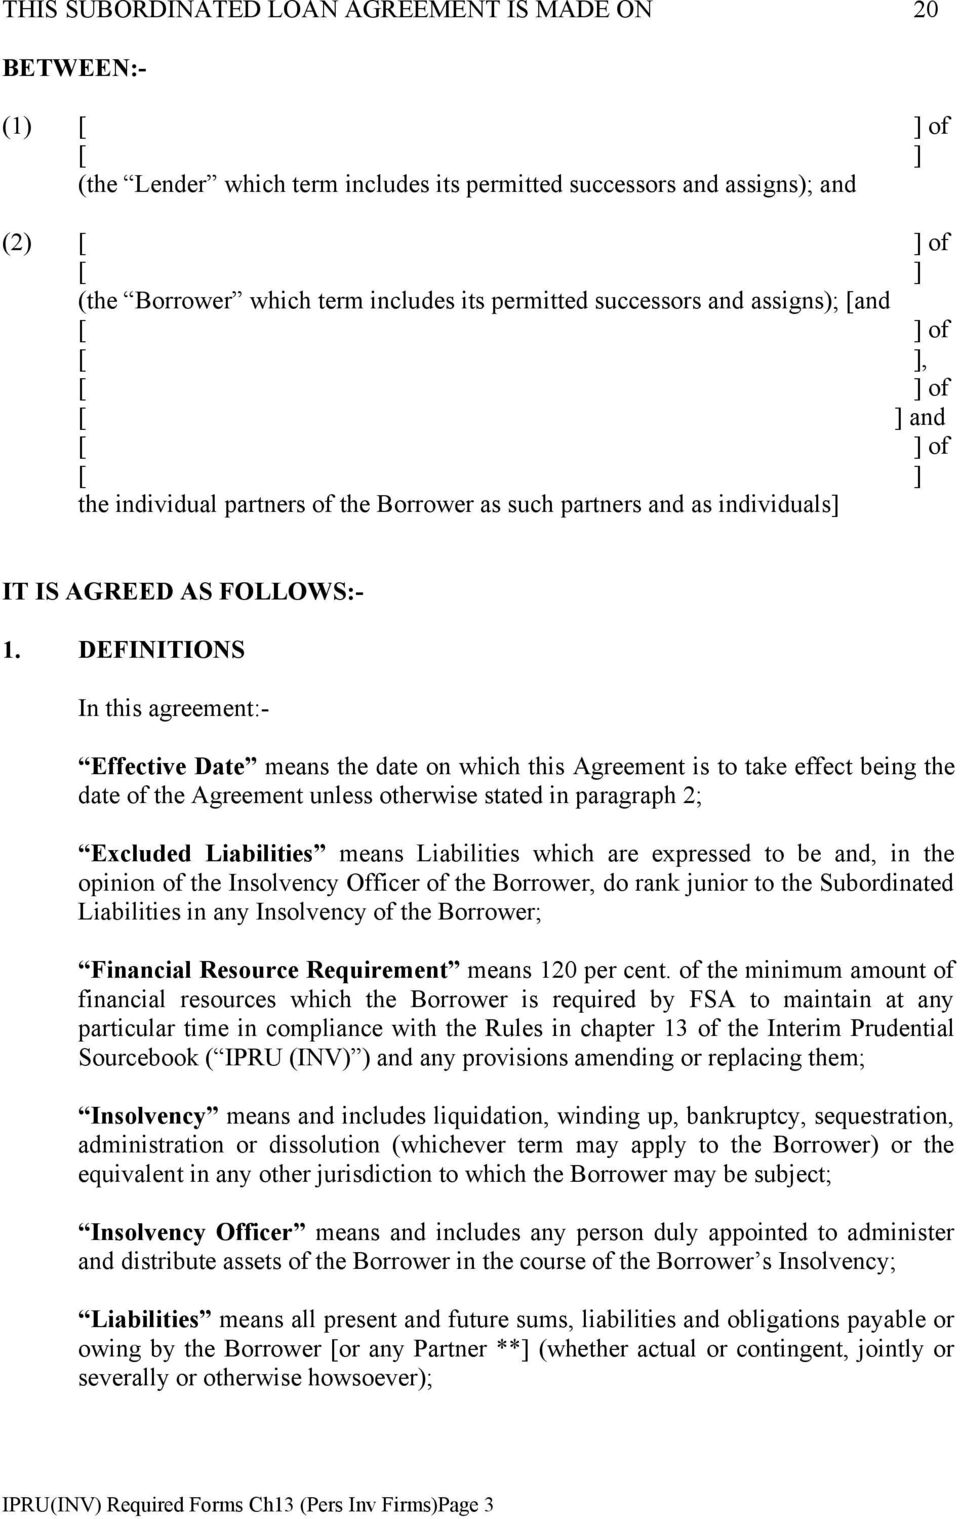 DEFINITIONS In this agreement:- Effective Date means the date on which this Agreement is to take effect being the date of the Agreement unless otherwise stated in paragraph 2; Excluded Liabilities